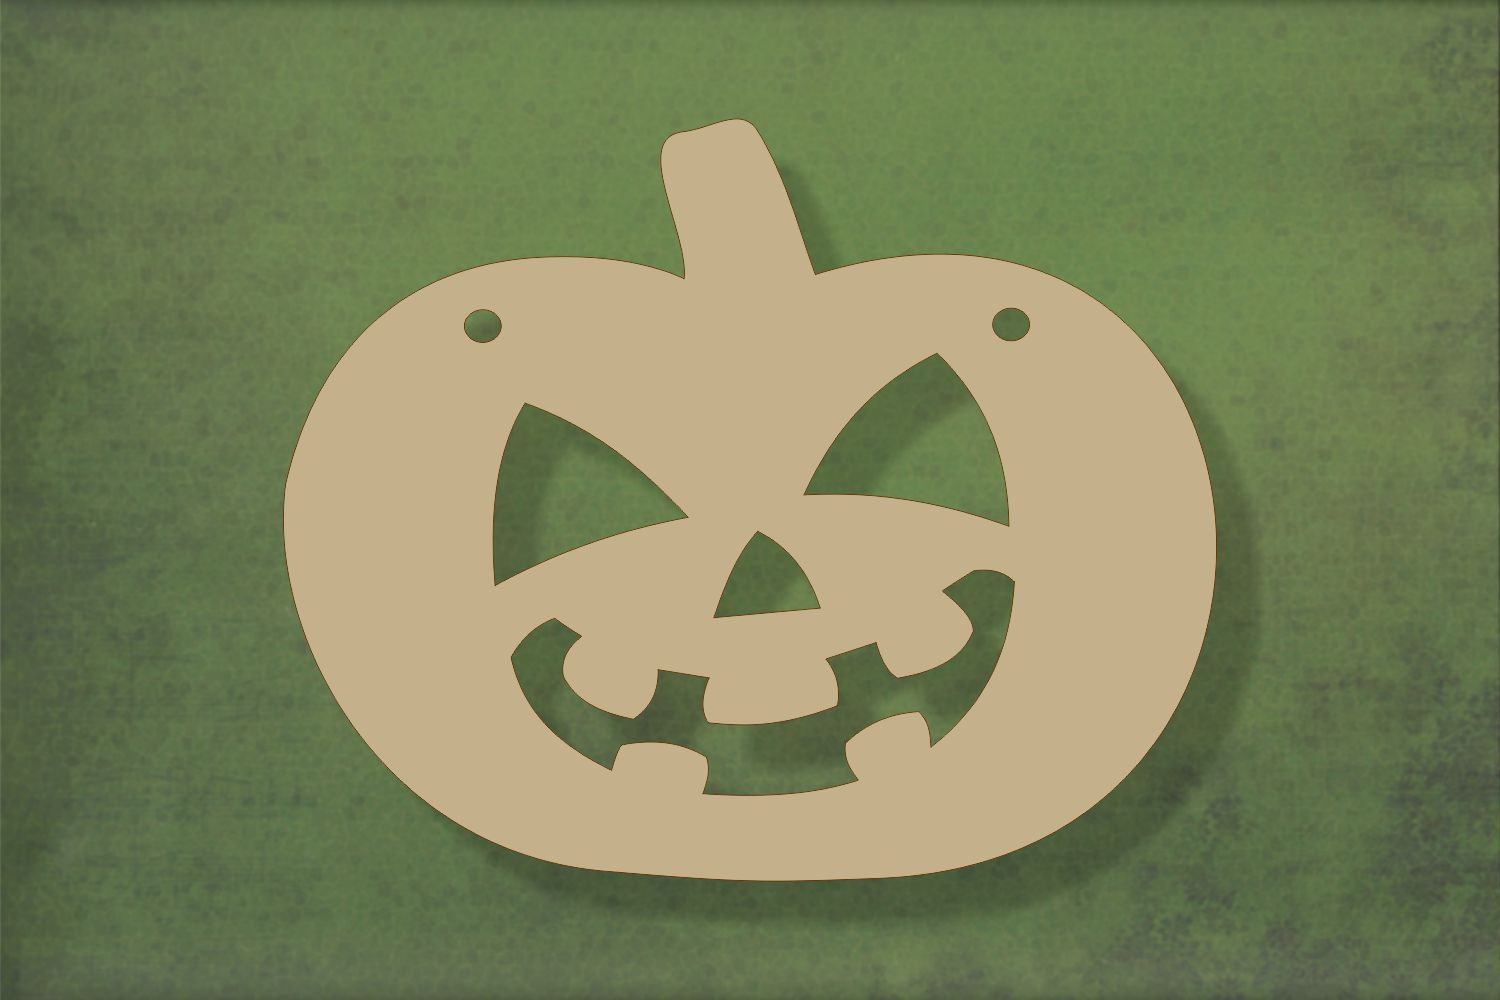 Laser cut, blank wooden Pumpkin 3 with halloween face shape for craft